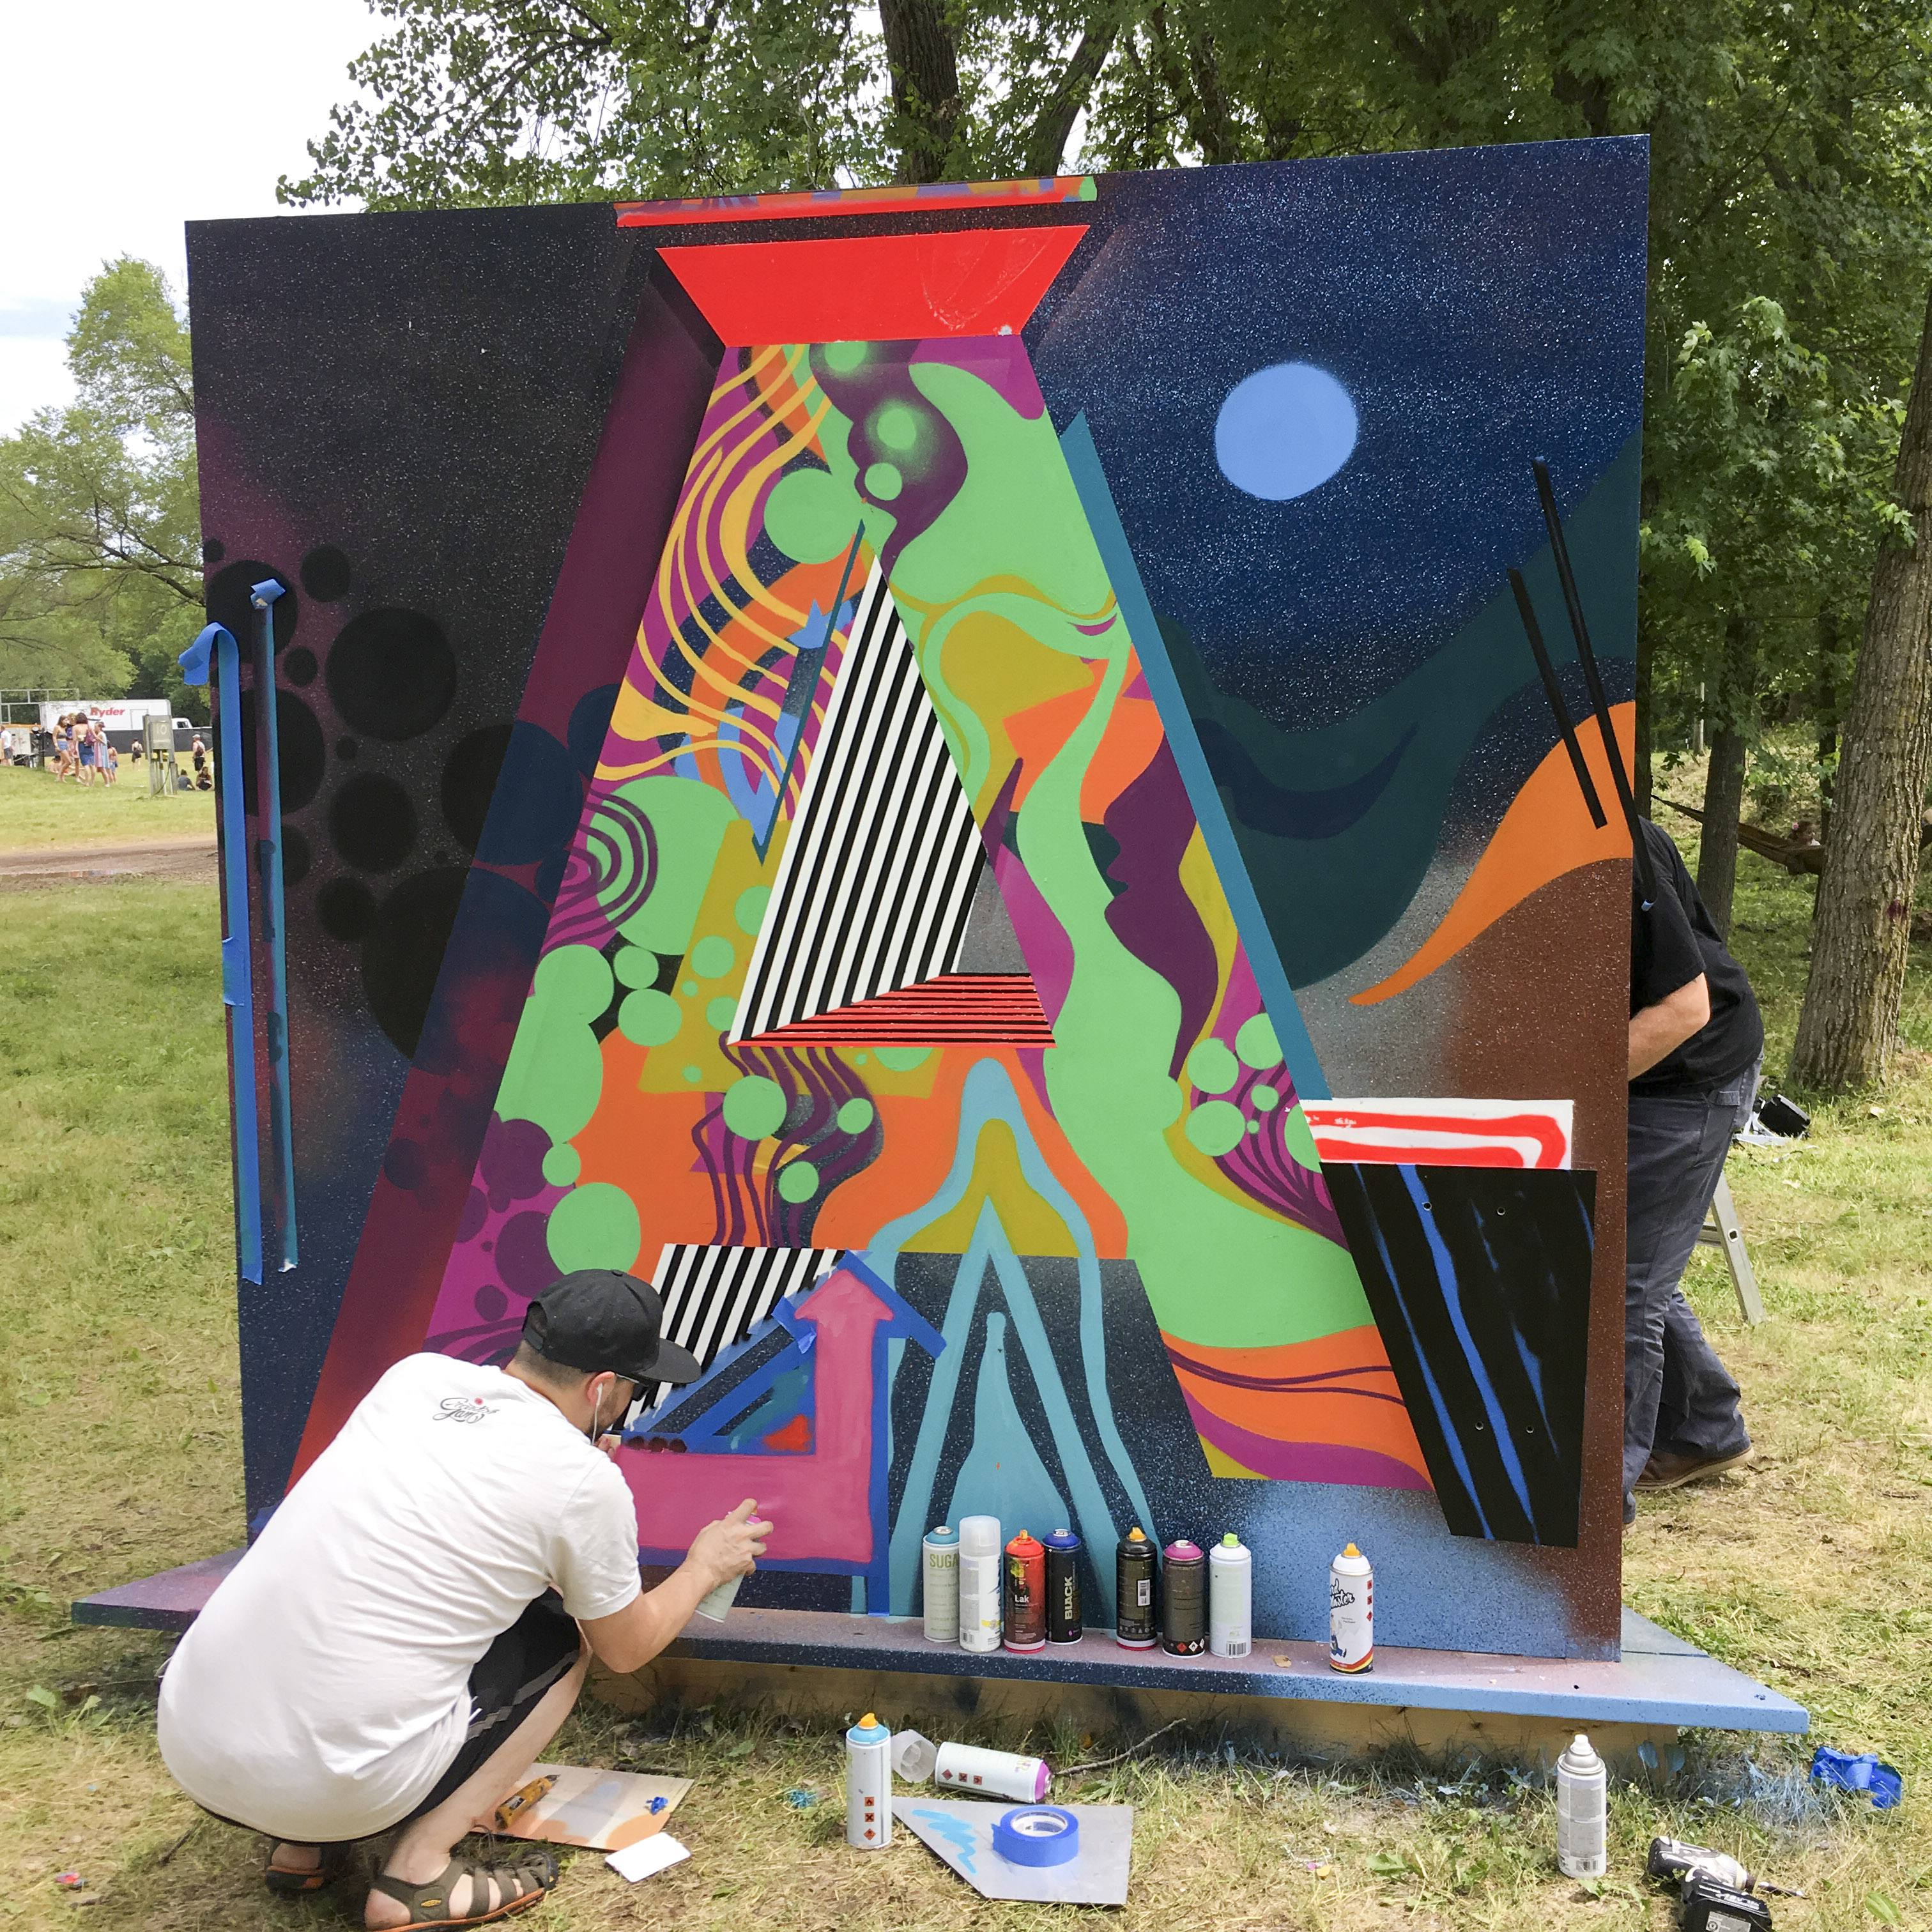 Live painting at Eaux Claires 2017 // Photo by Kevin Sterne